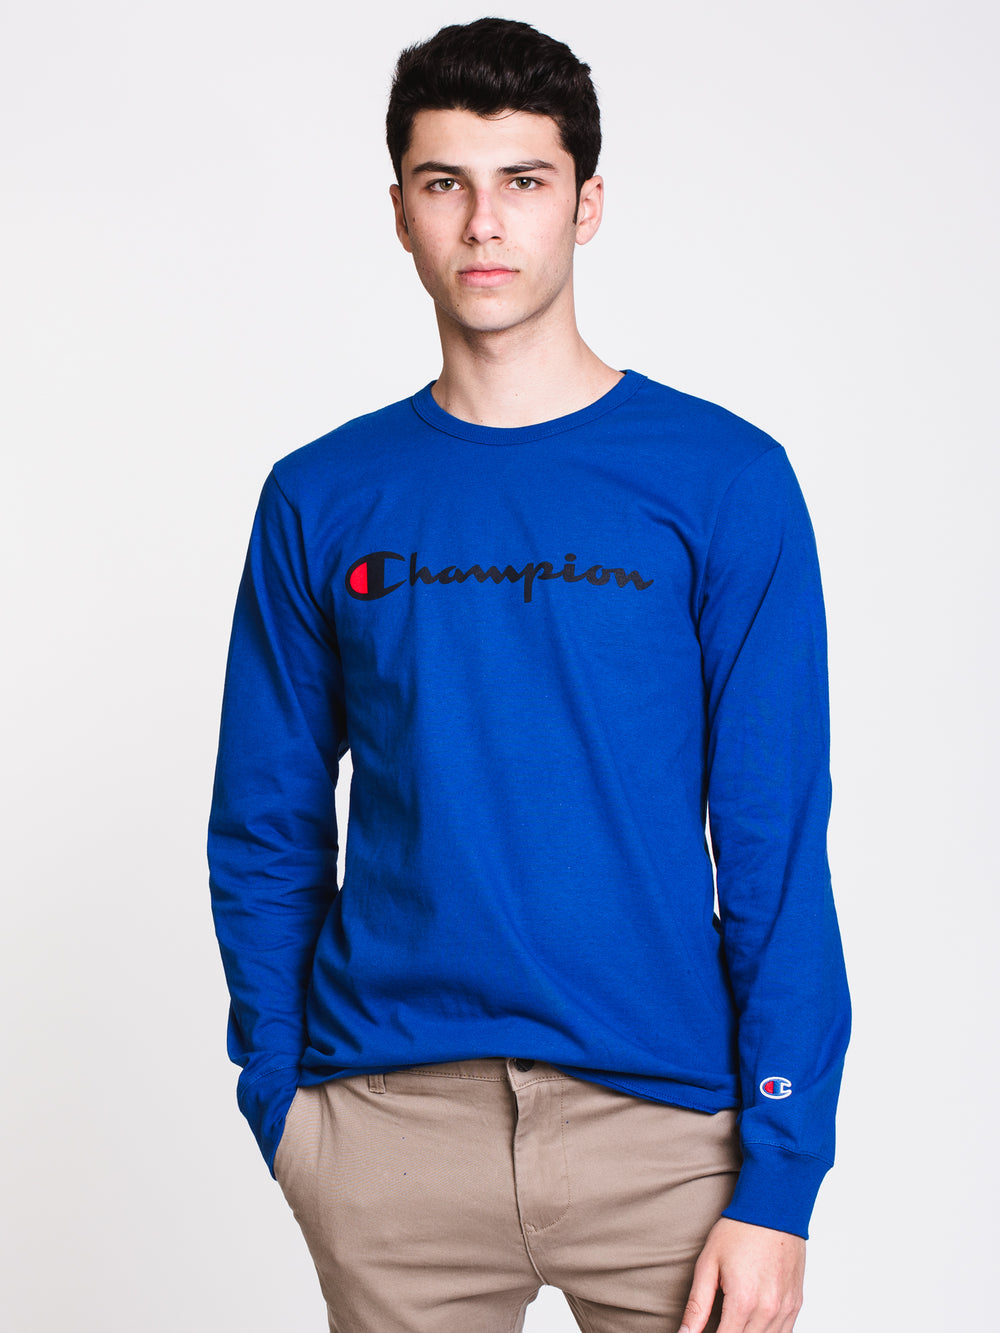 MENS HERITAGE CHEST LONG SLEEVE T-SHIRT - BLUE